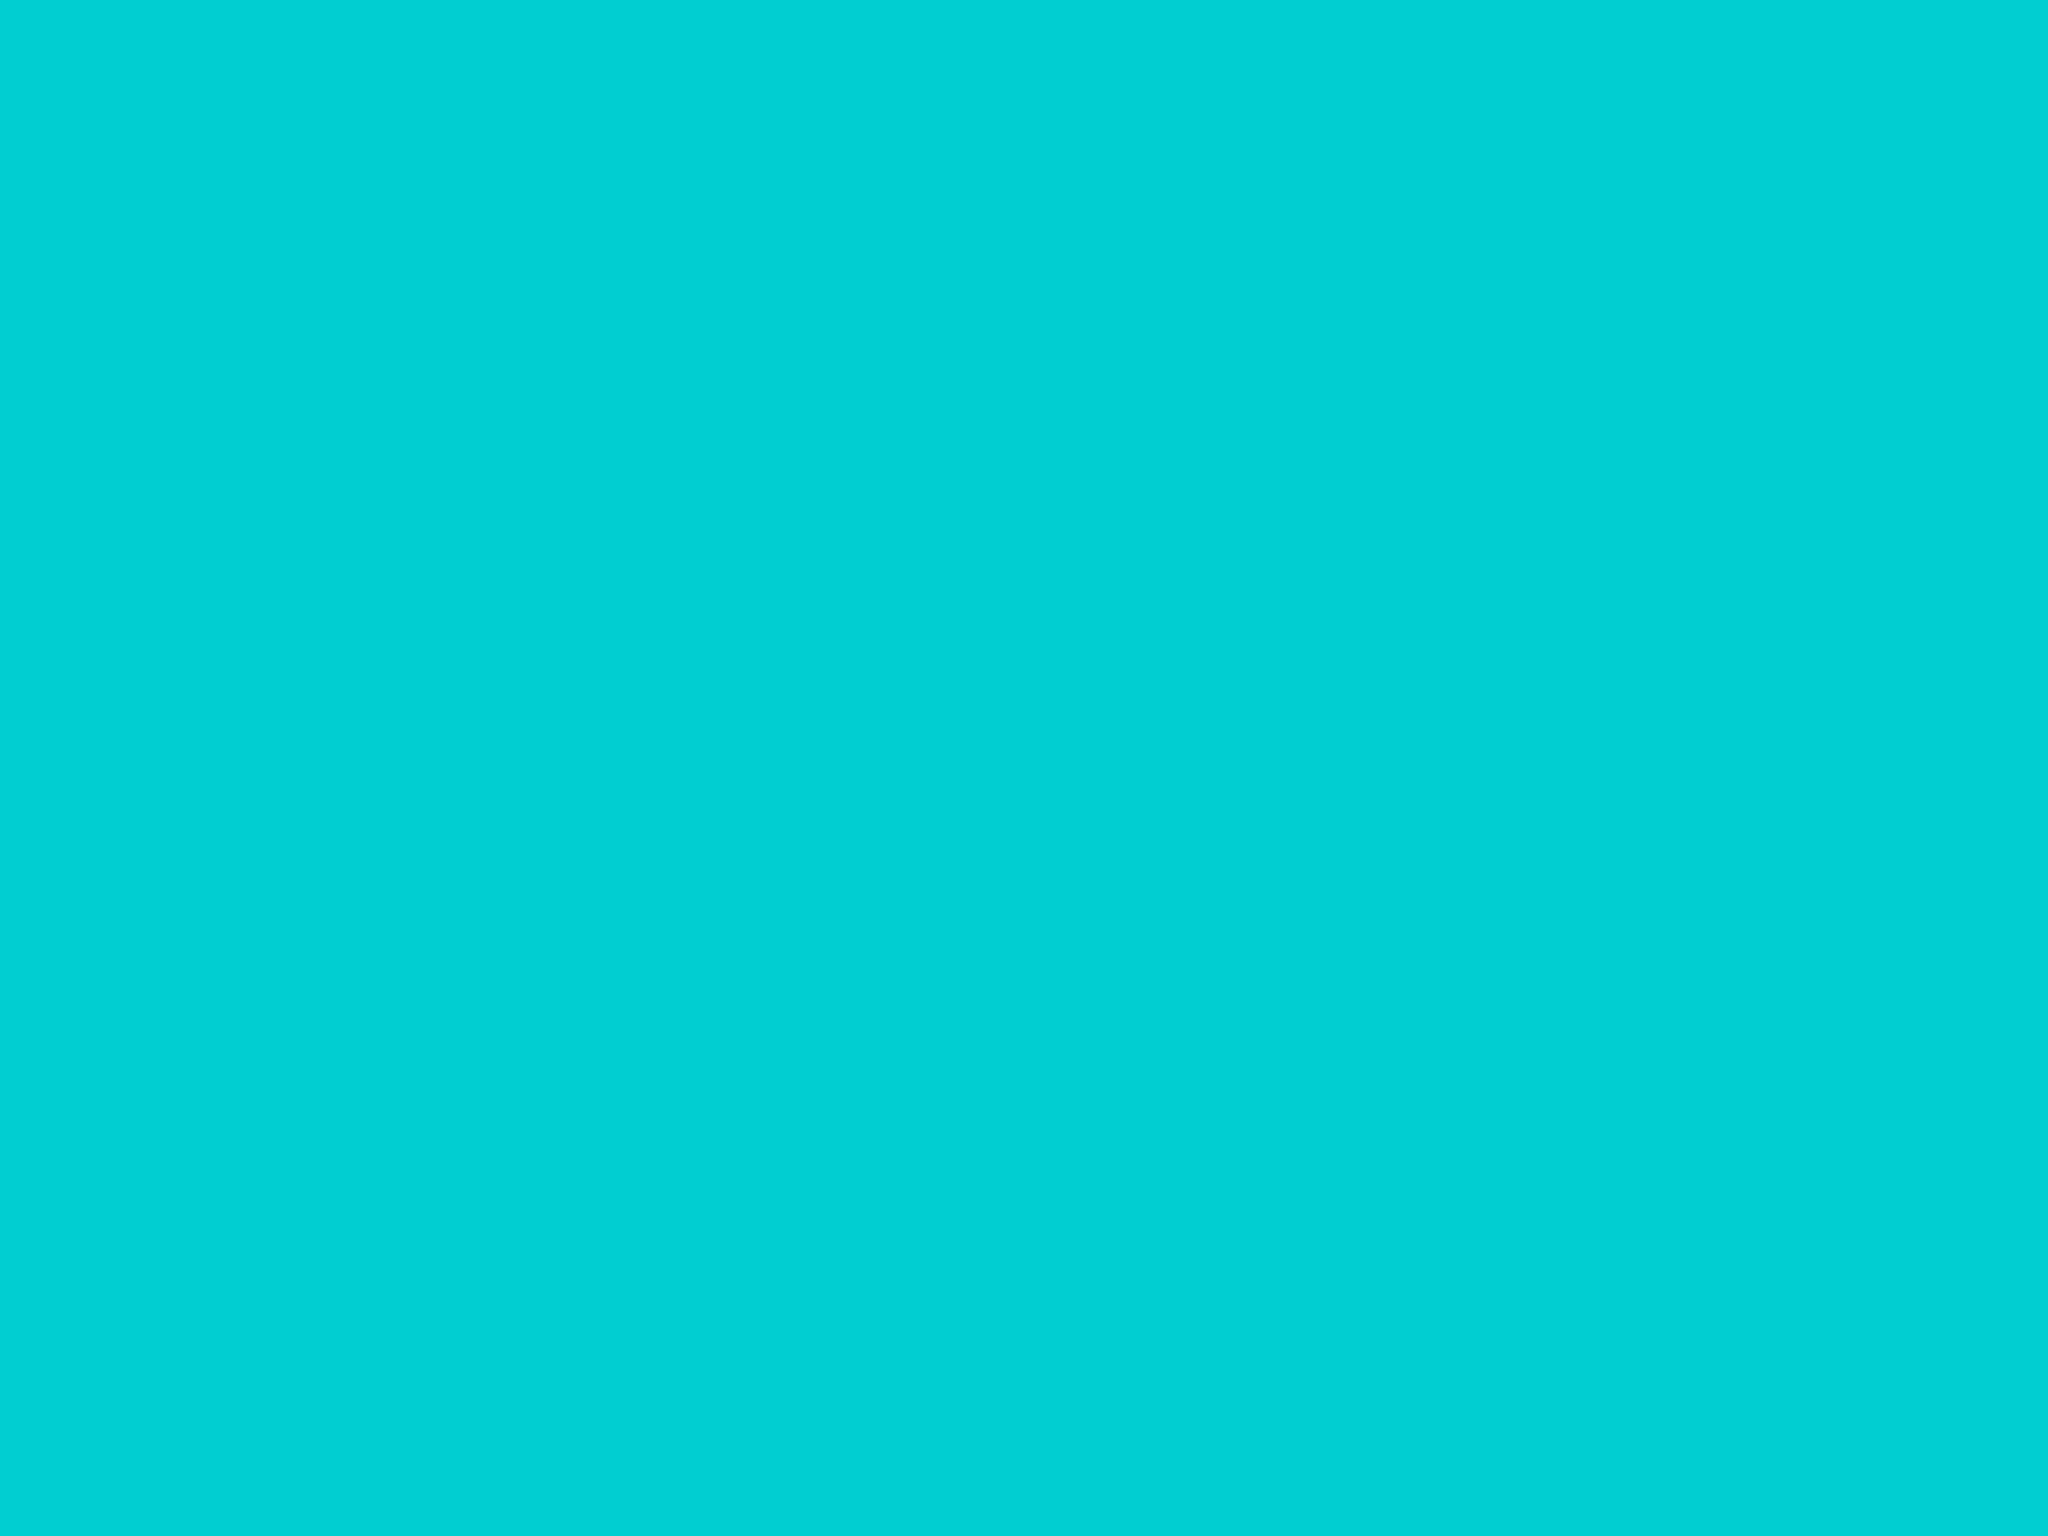 2048x1536 Dark Turquoise Solid Color Background